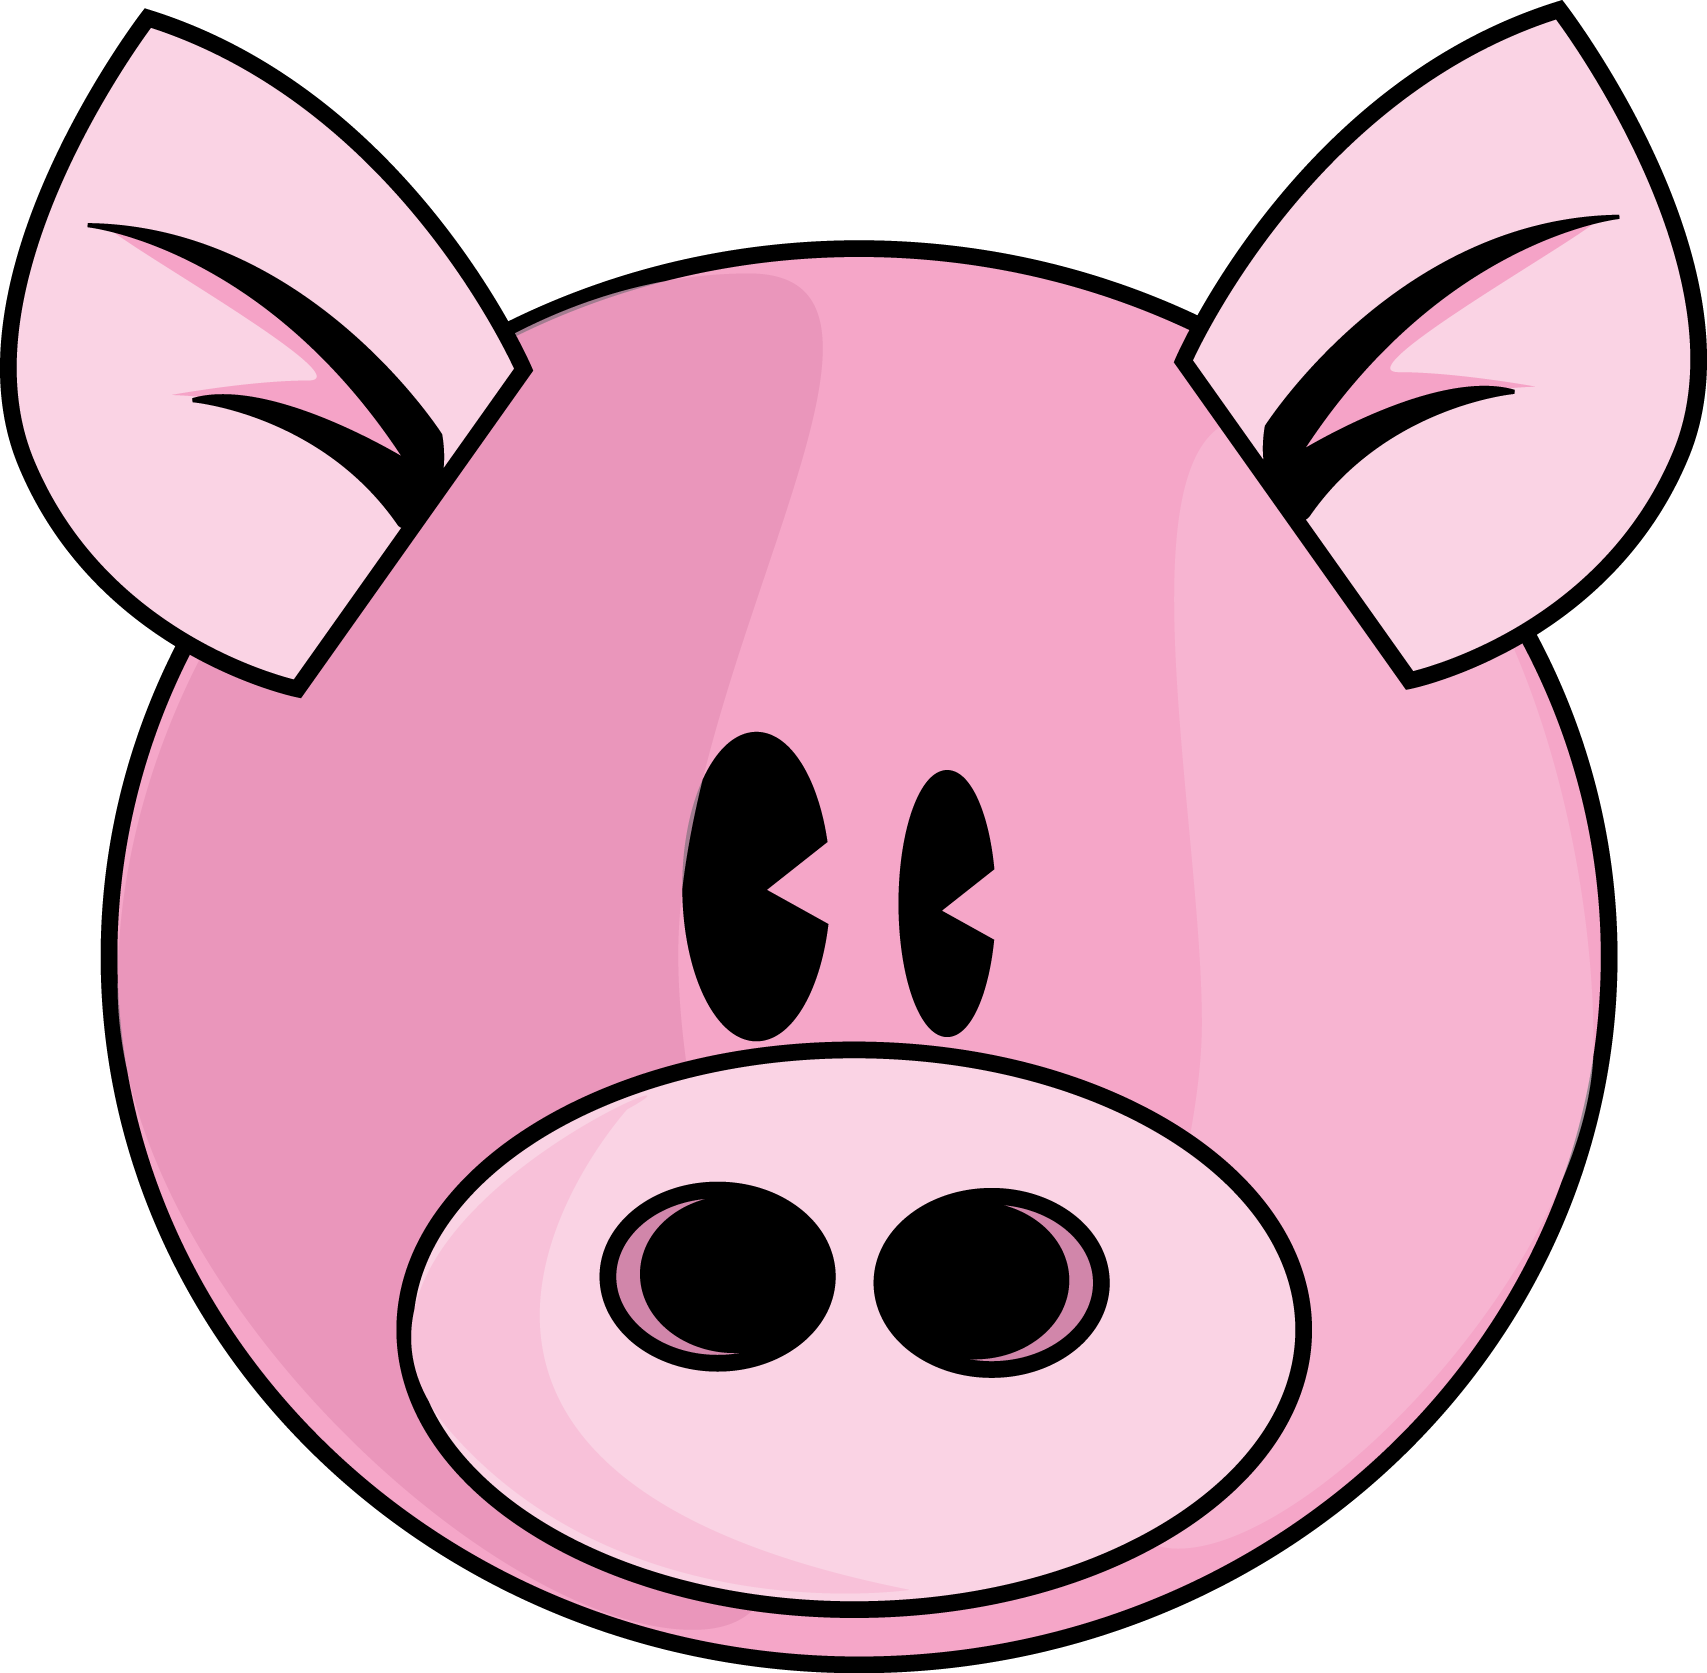 Line Drawing Of A Pig Face : Cute pig face clip art clipart panda free images